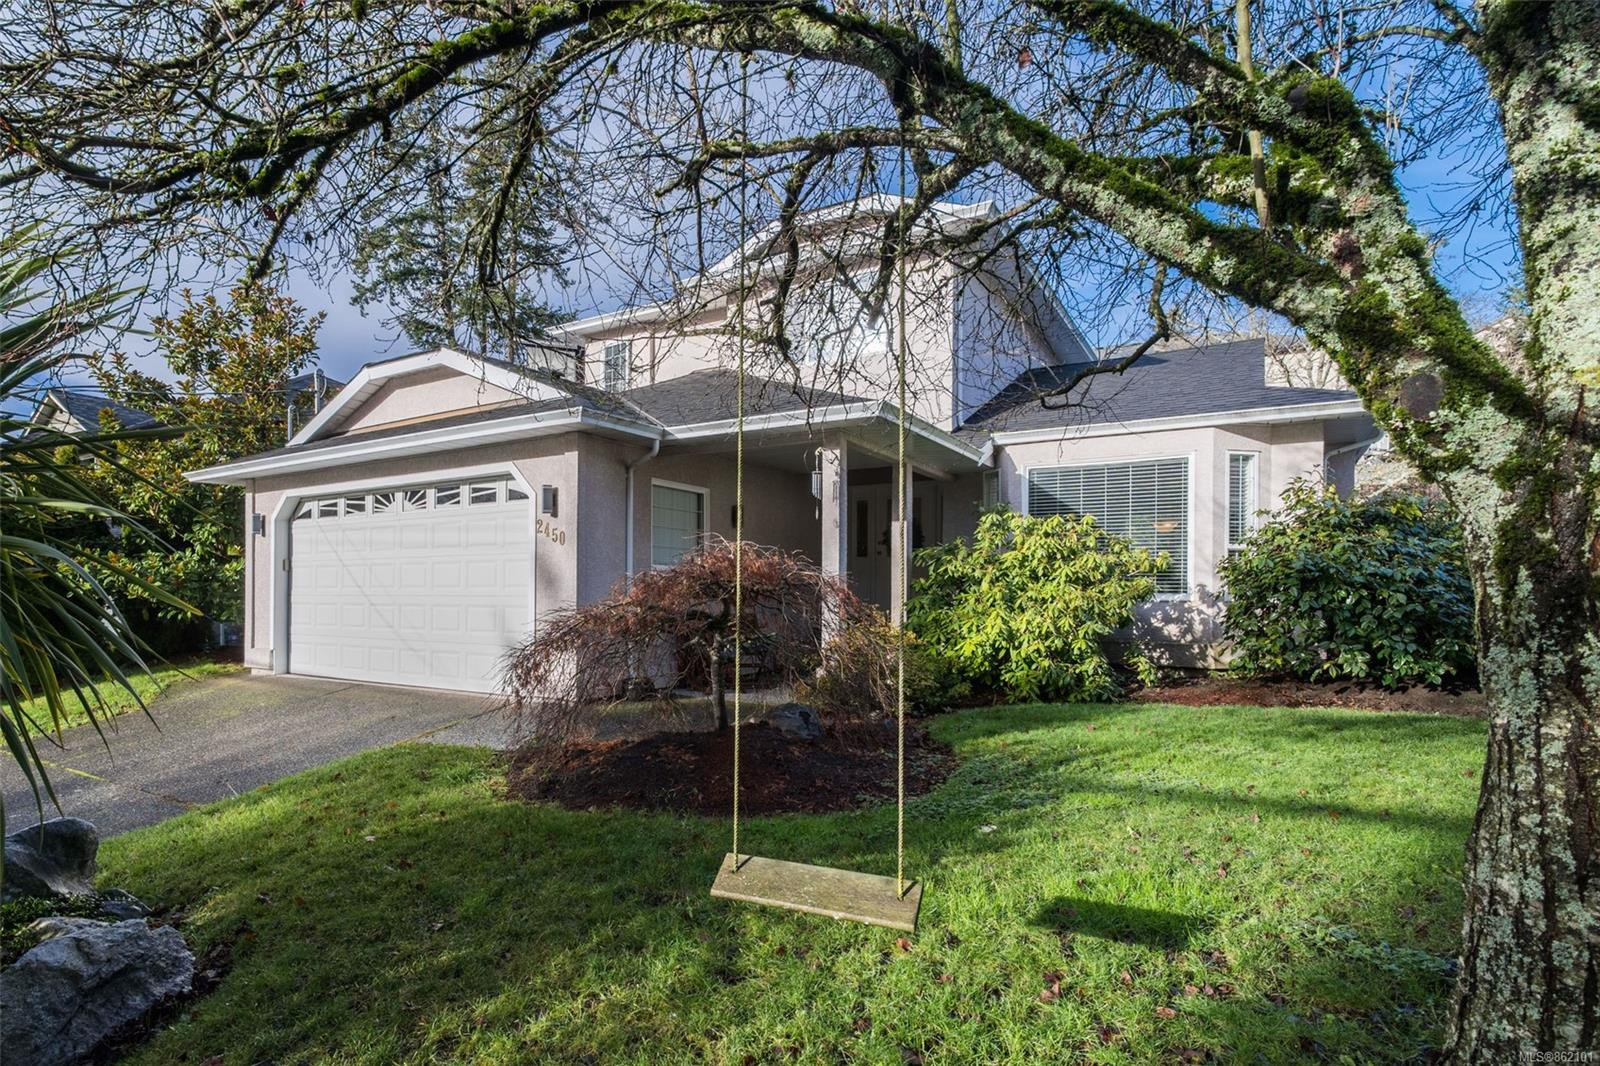 Main Photo: 2450 Setchfield Ave in : La Florence Lake House for sale (Langford)  : MLS®# 862101